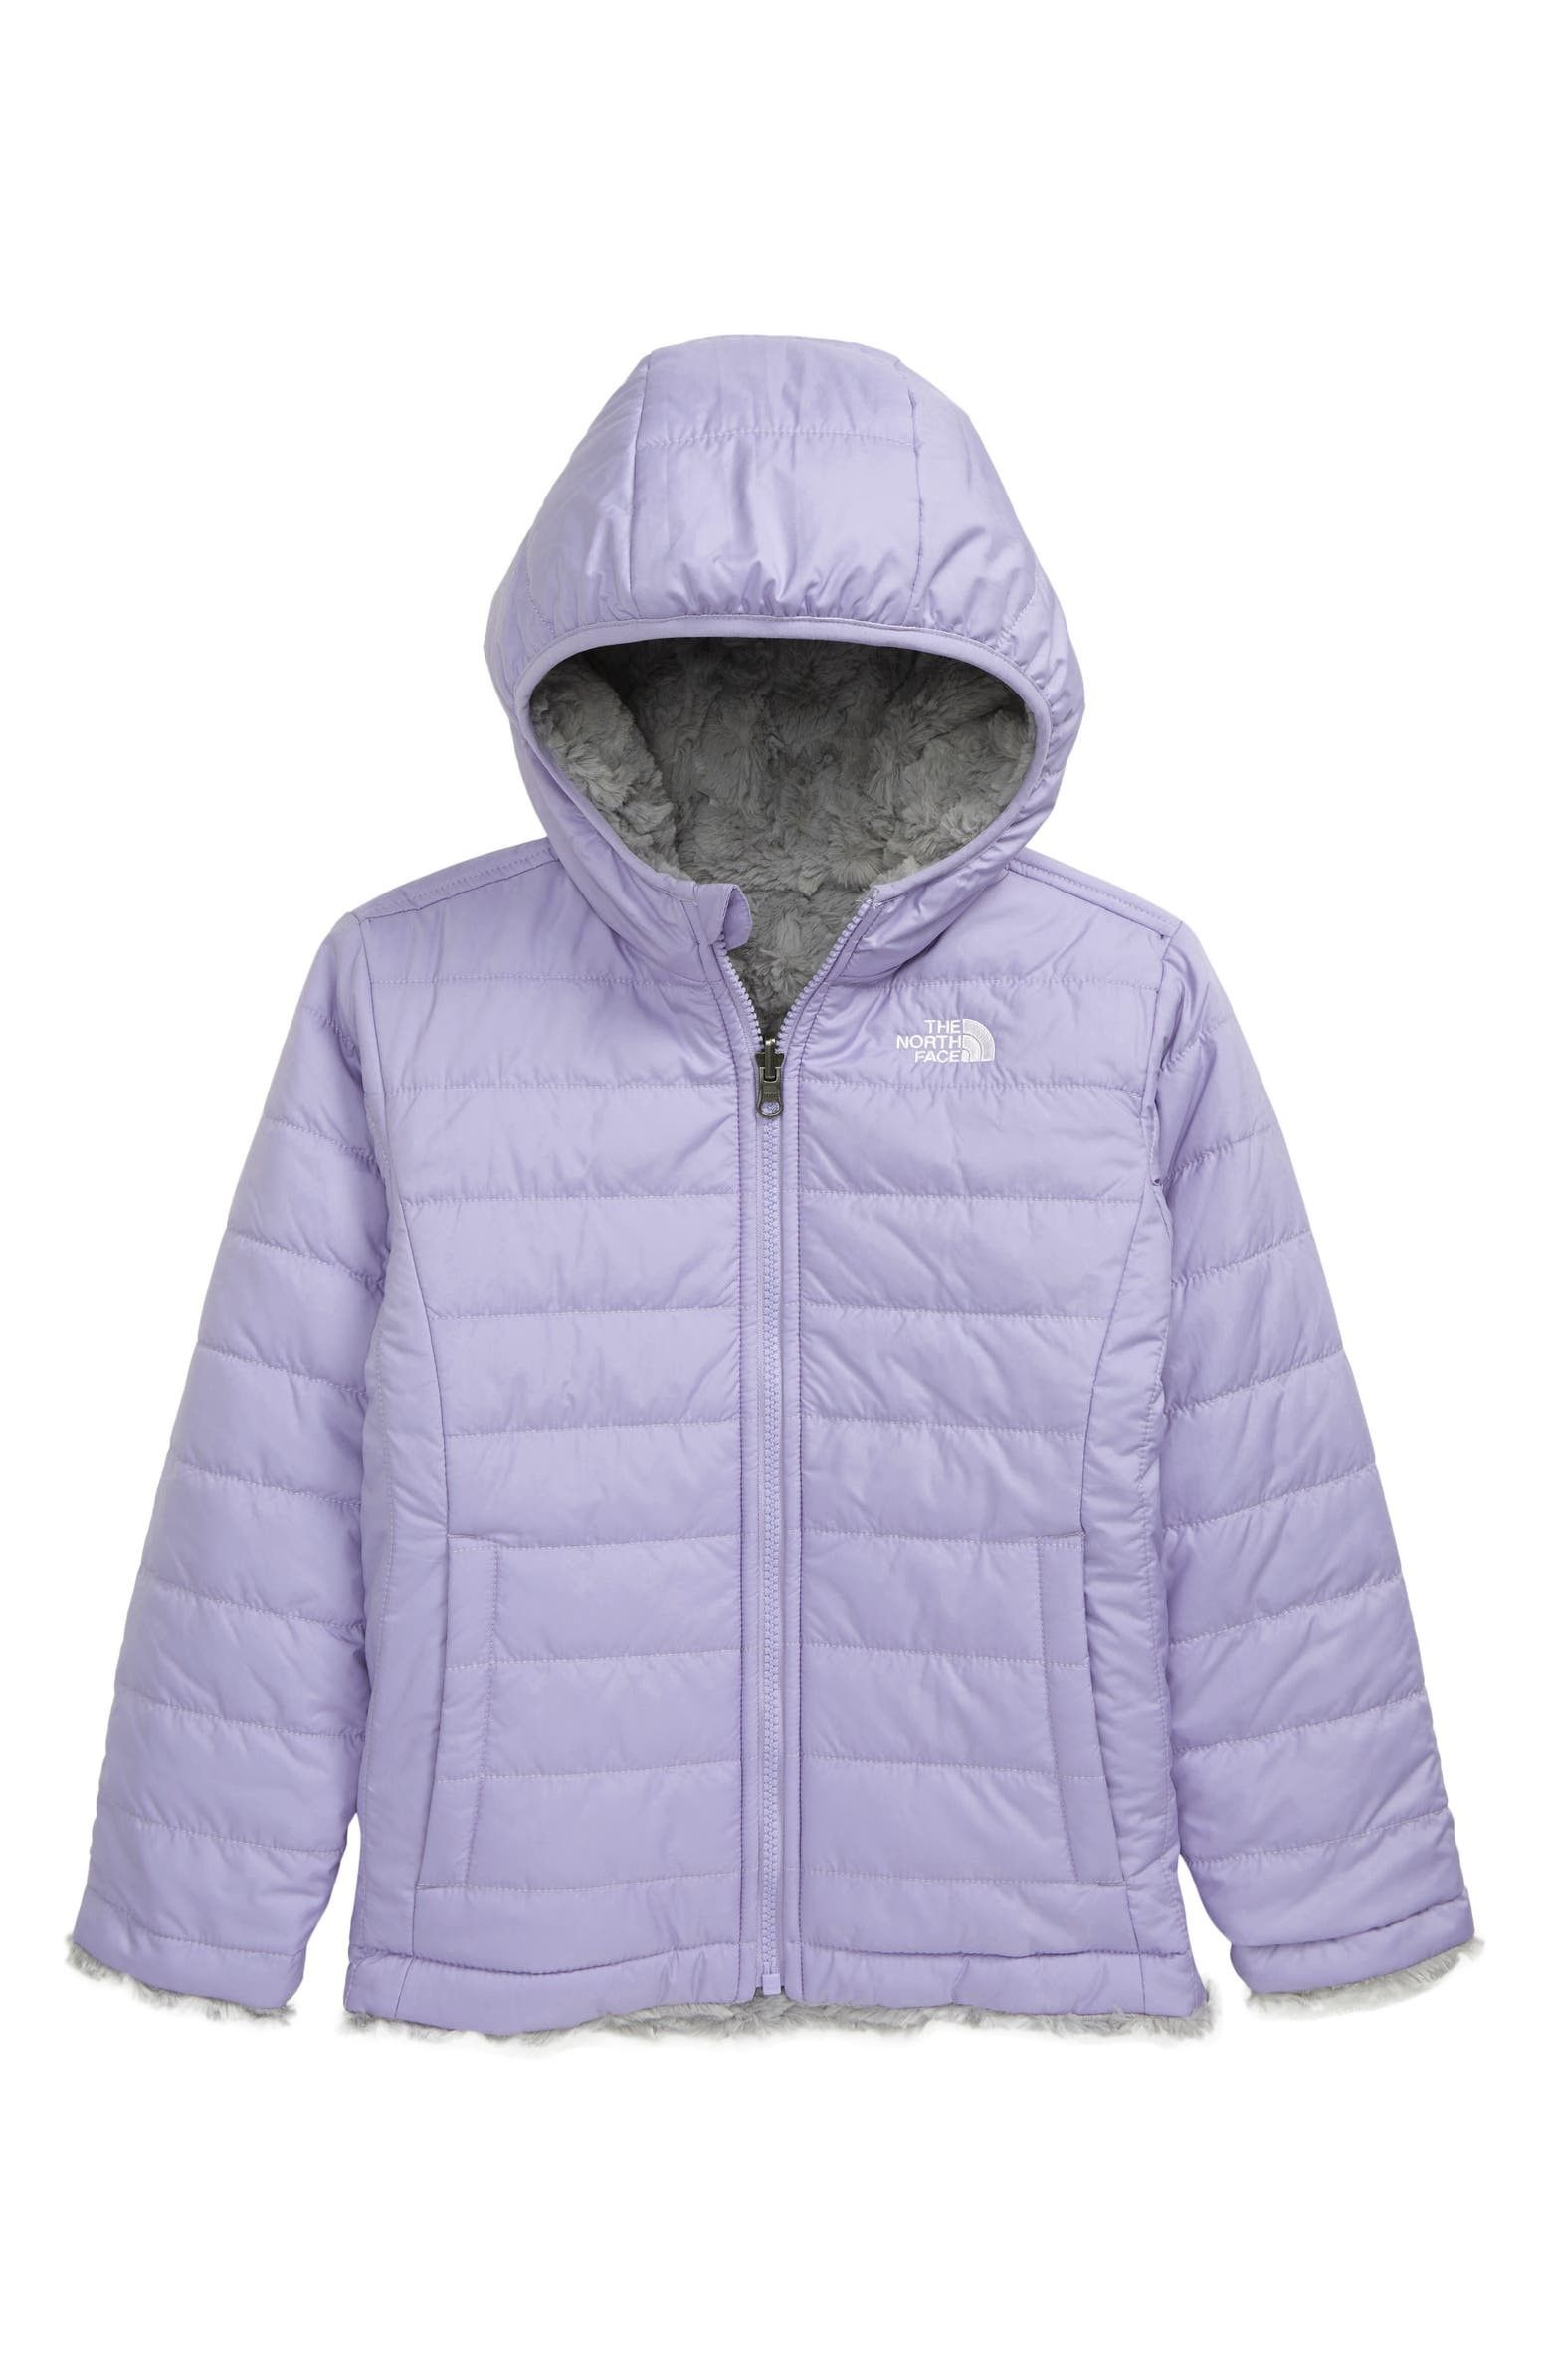 The North Face Kids Mossbud Swirl Reversible Water Repellent Jacket Toddler Little Girl N North Face Kids Girls North Face Jacket Water Repellent Jacket [ 2392 x 1560 Pixel ]